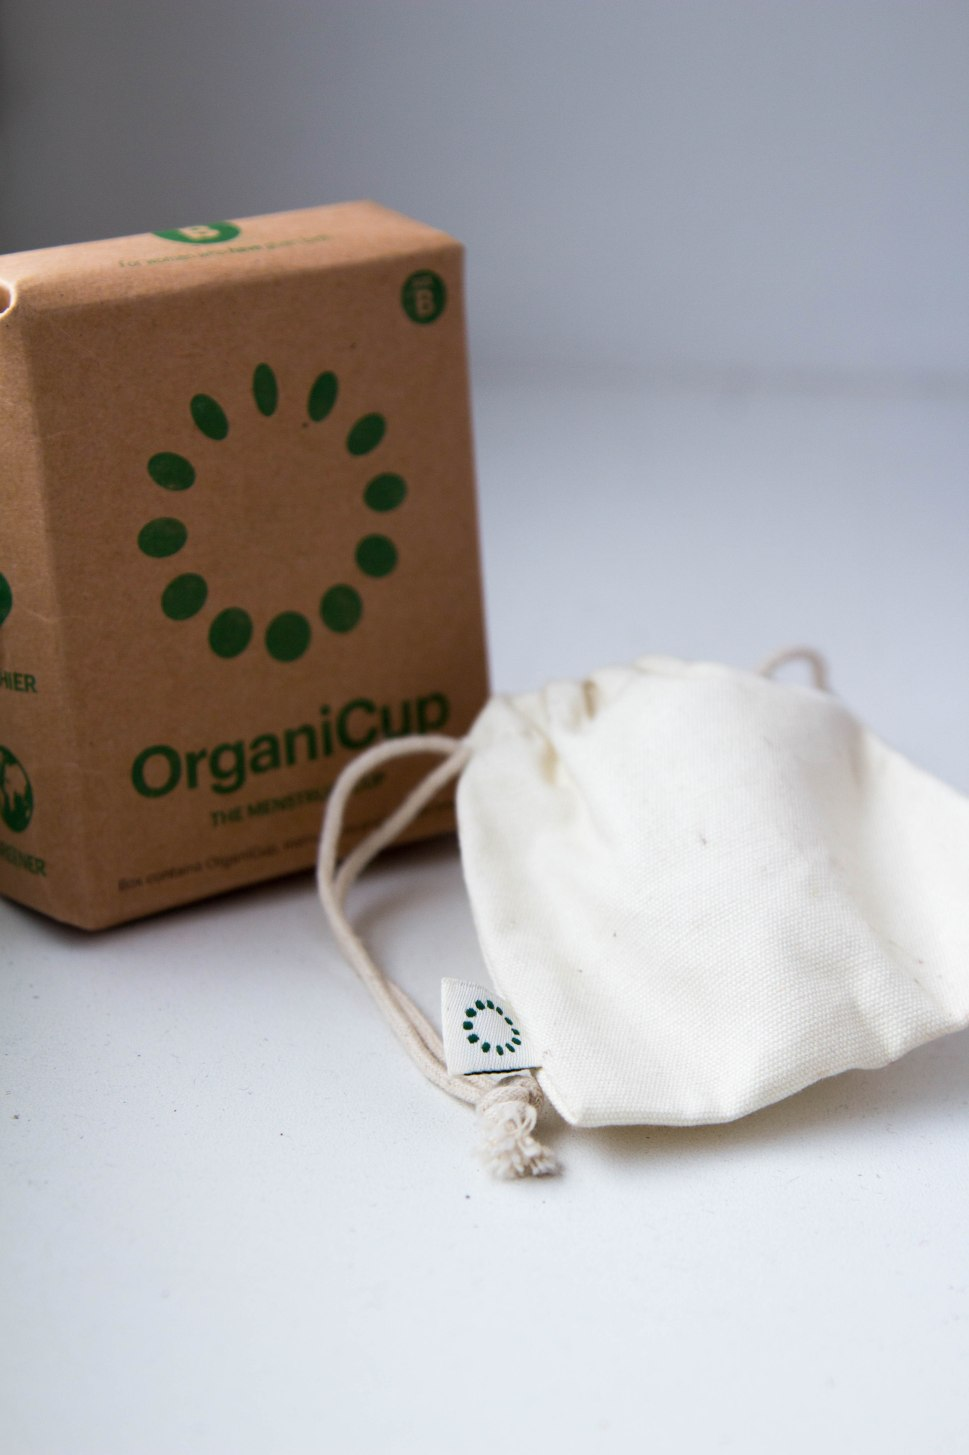 Organicup tests